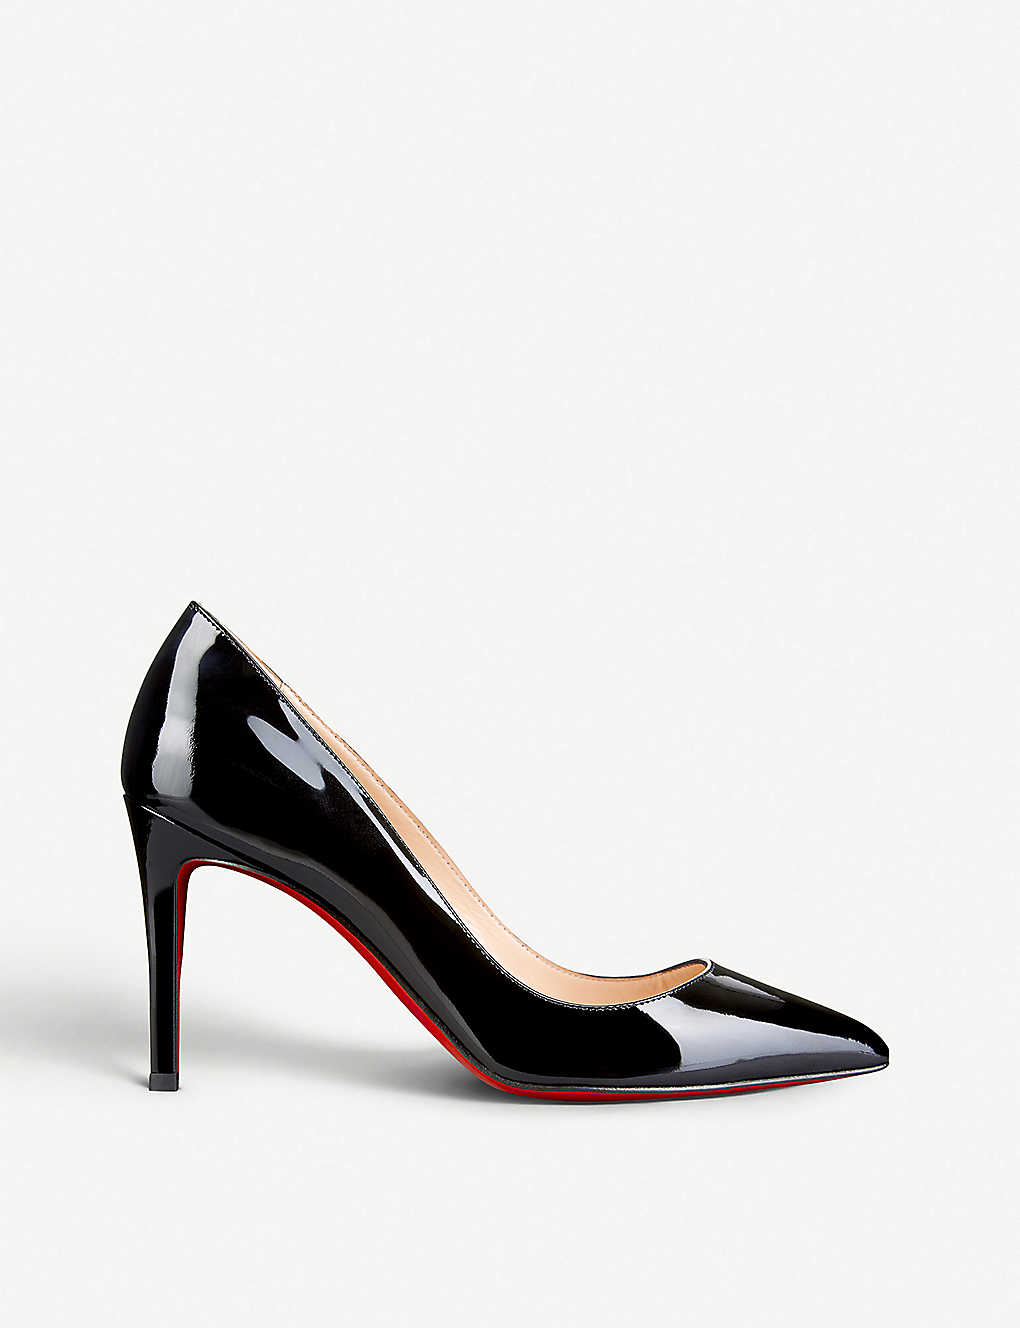 940885f430ba CHRISTIAN LOUBOUTIN - Pigalle 85 patent calf